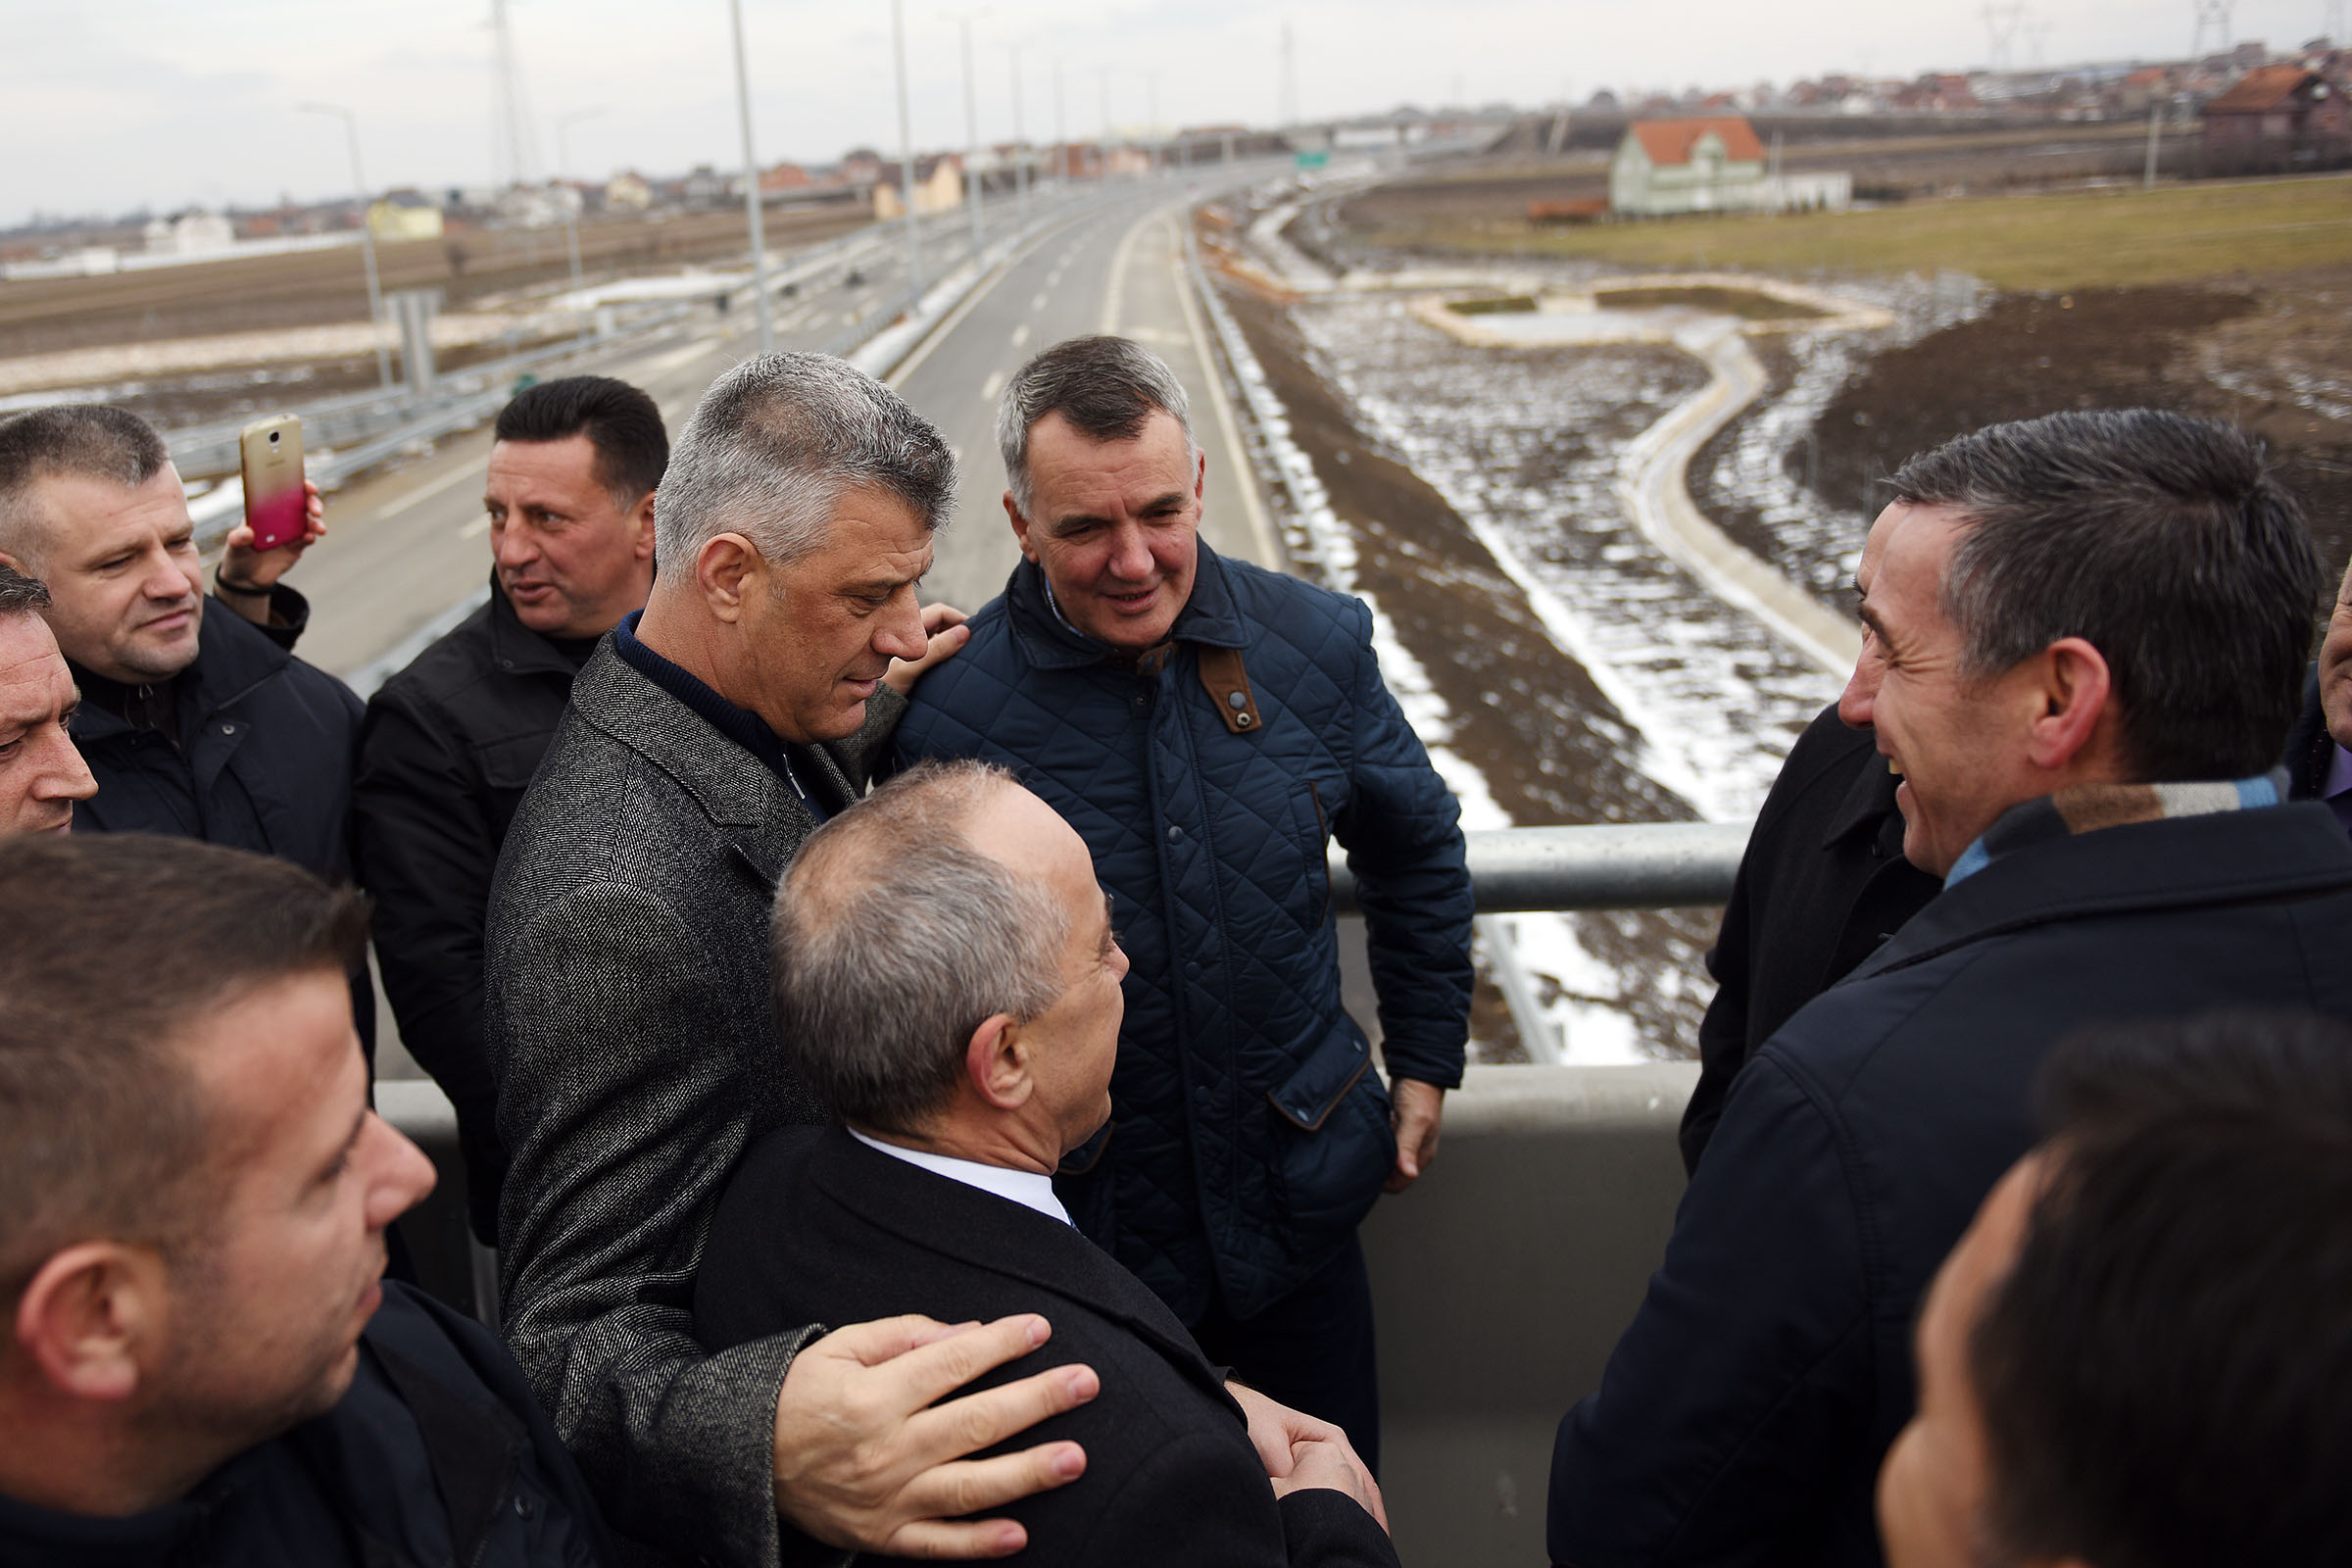 President Thaçi: This is the new Kosovo we are building